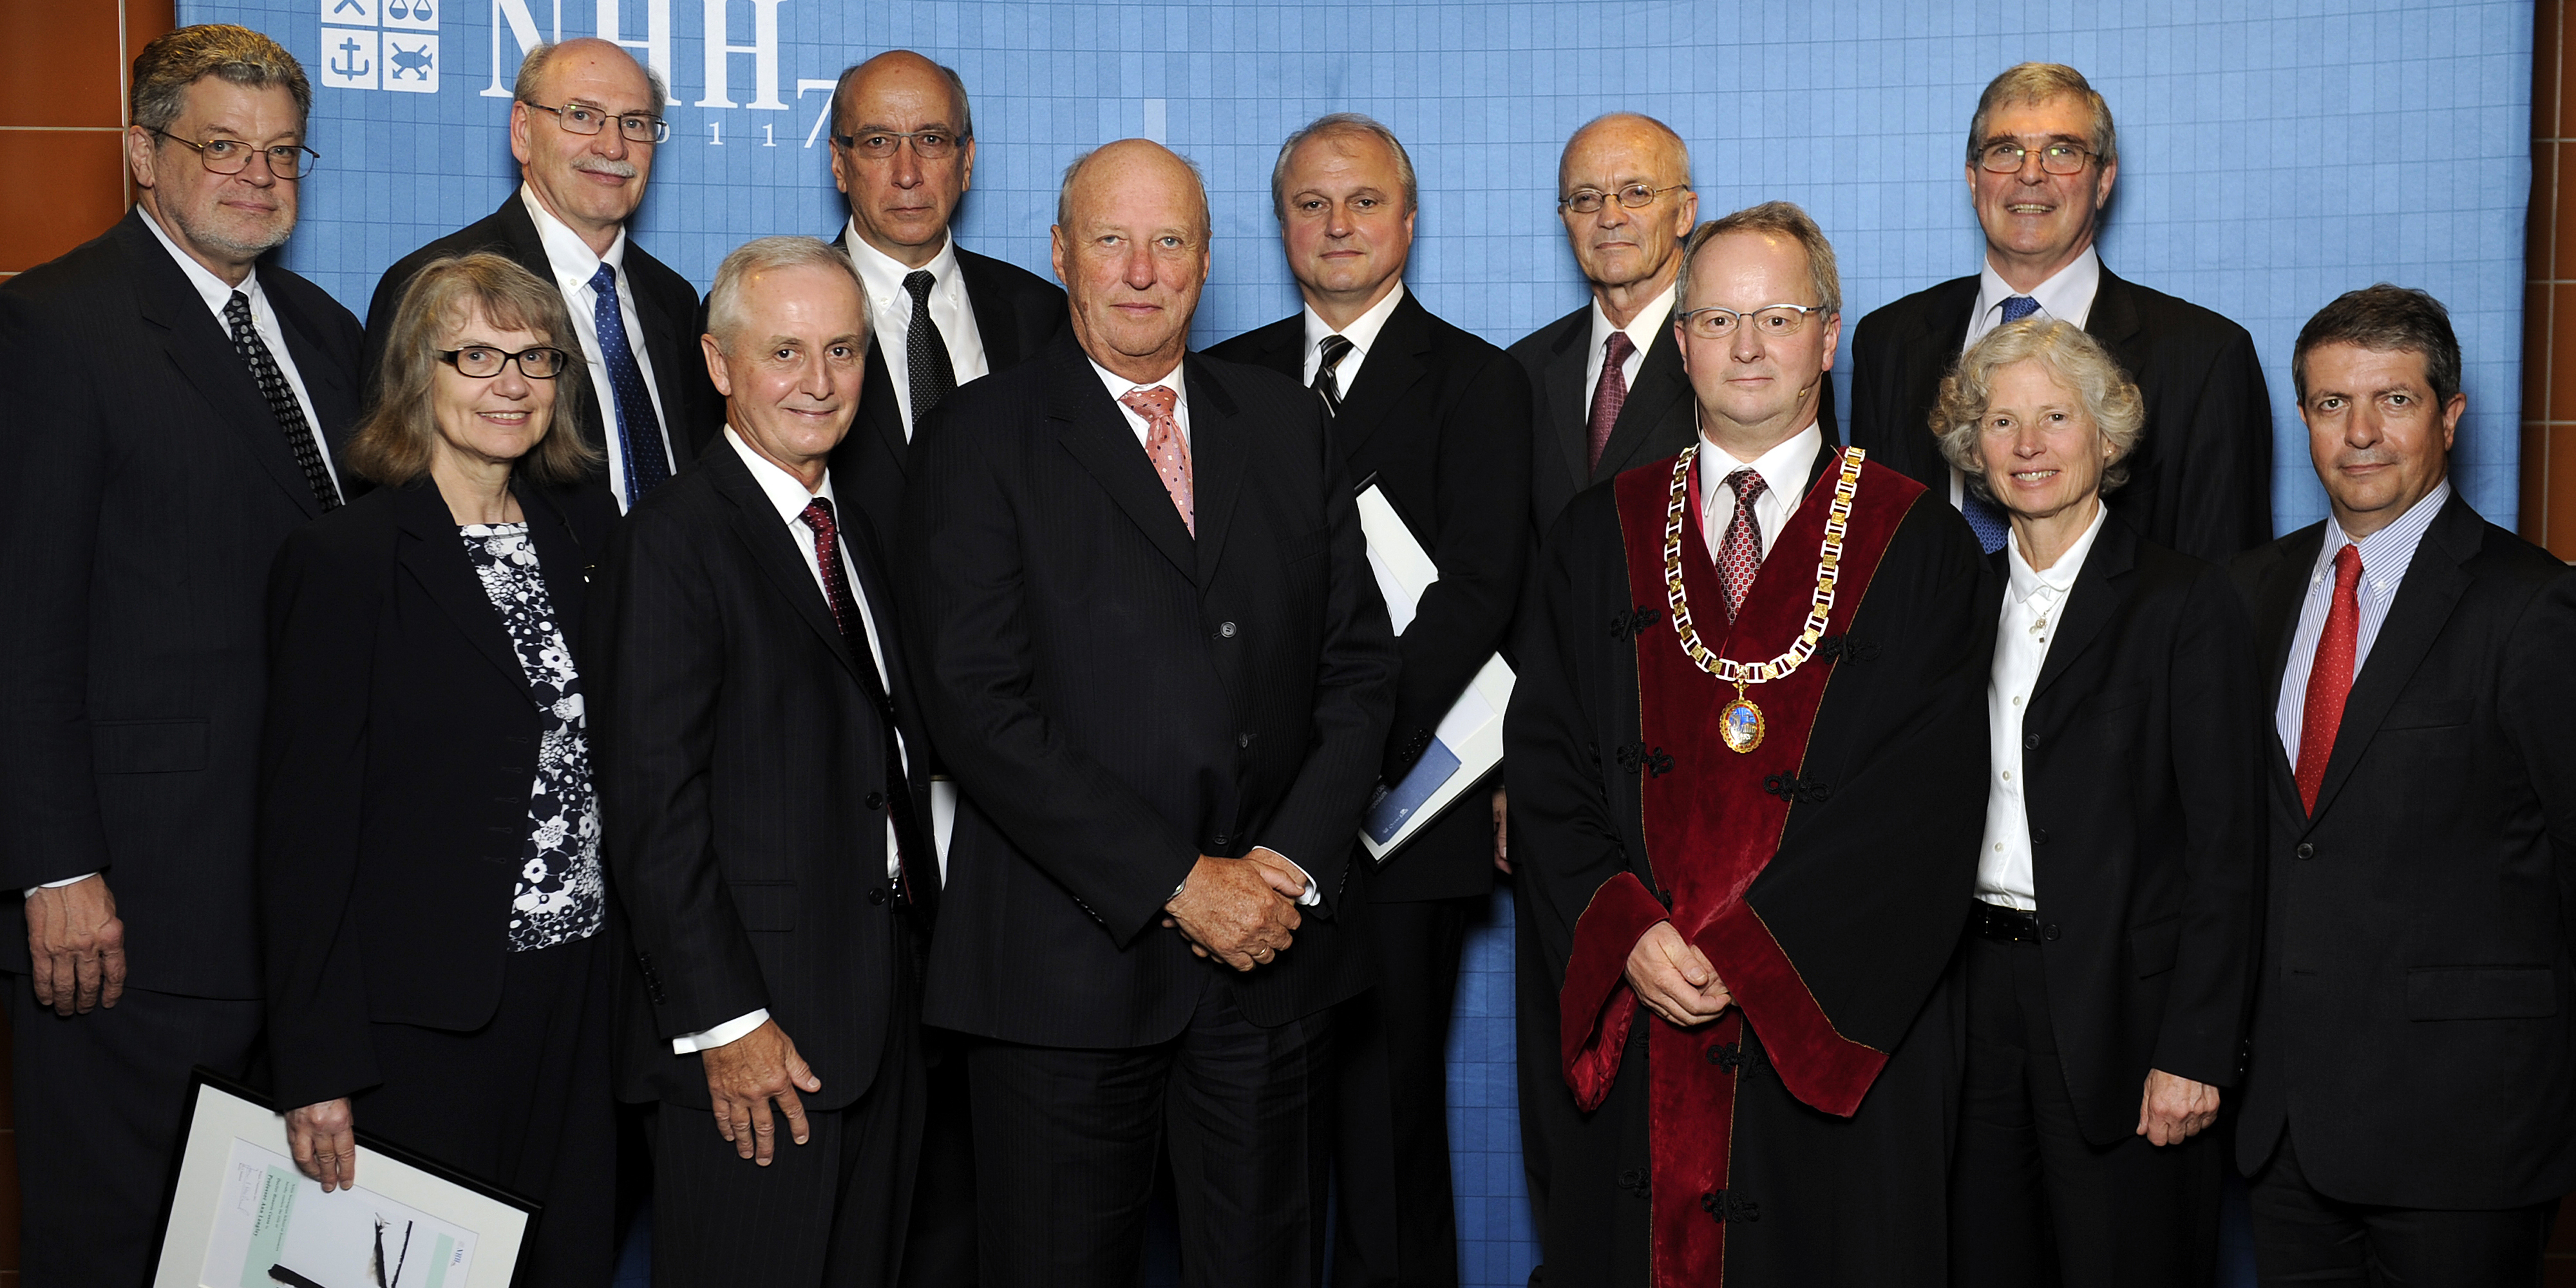 King Harald and former Rector Jan I Haaland with honorary doctors appointed during NHH's 75th anniversary in 2011. Photo: Helge Skodvin